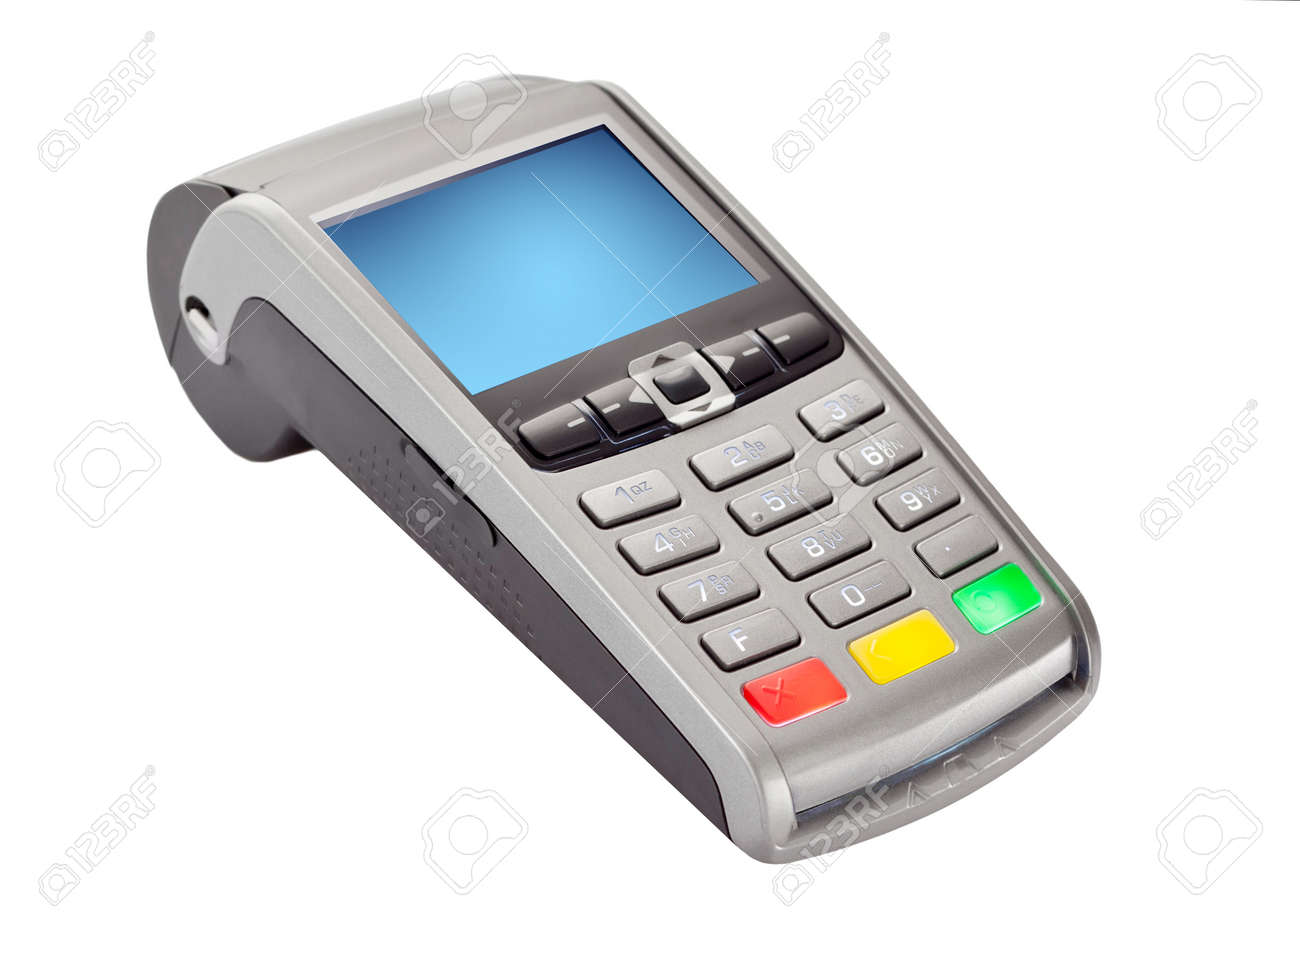 POS Payment Terminal for credit card payments isolated on white - 170024319